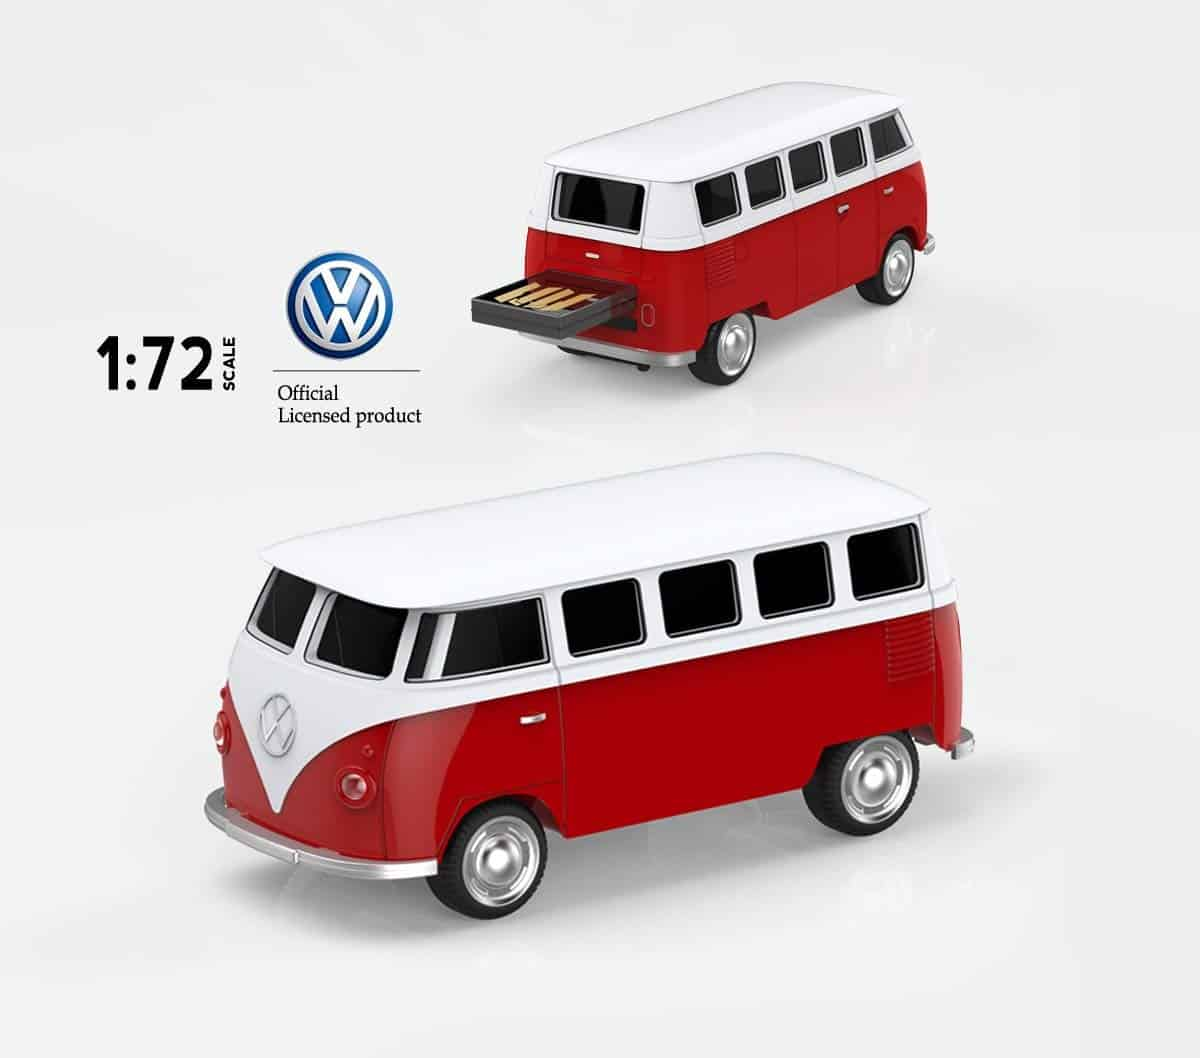 VW BUS USB Flash Drive